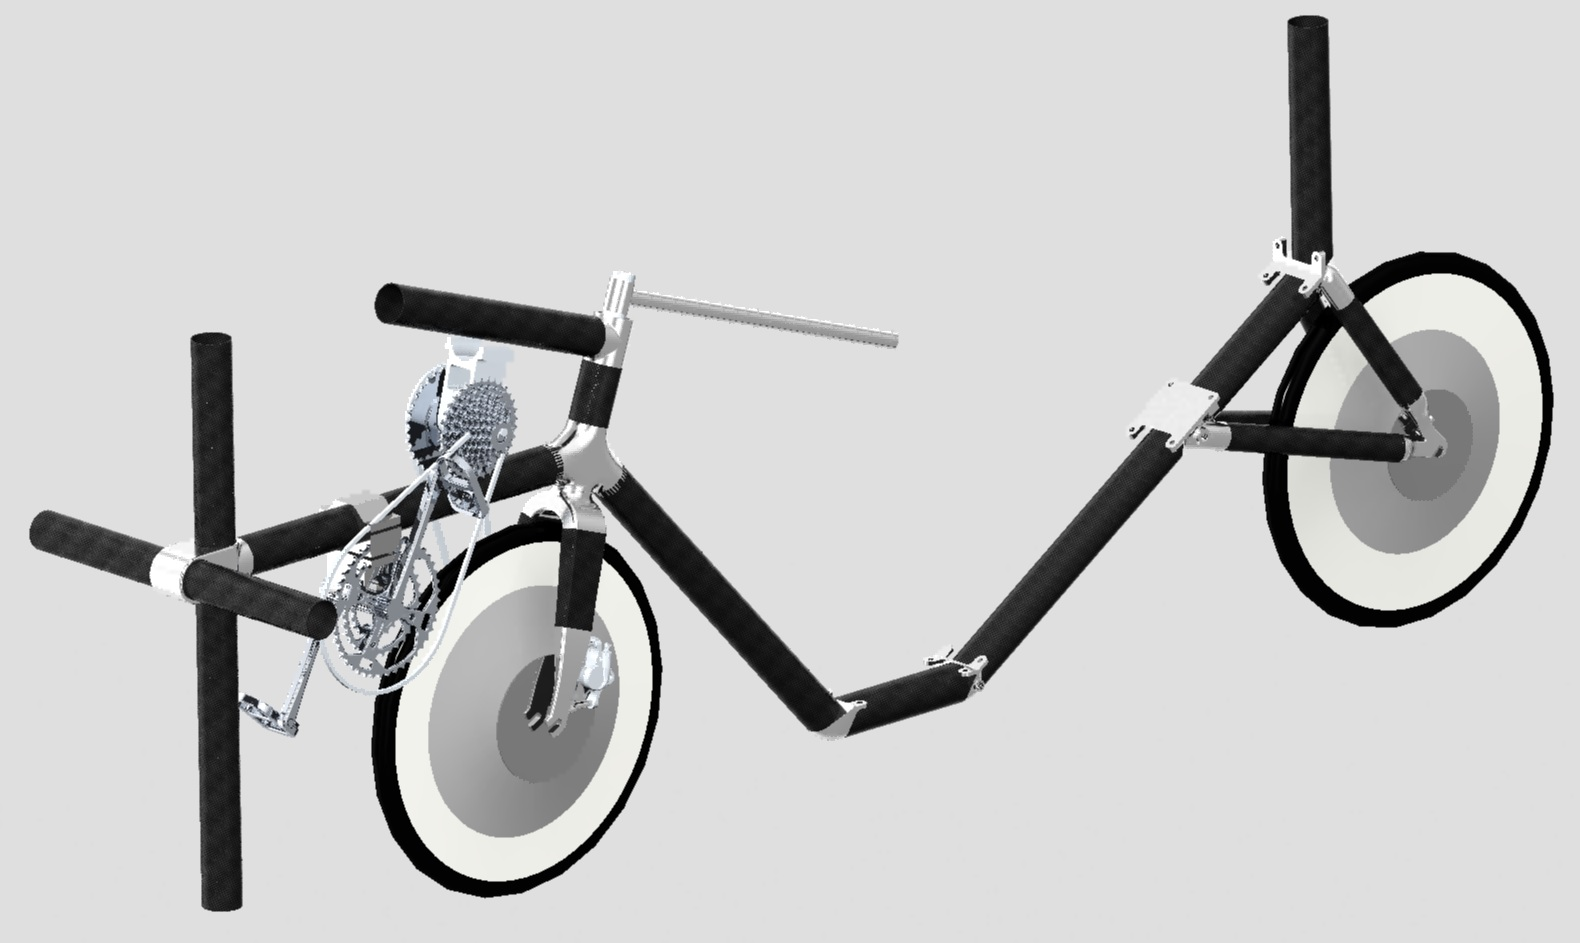 Rendered Image of our frame, constructed using Carbon Fibre tubes and 3D printed Titanium joints